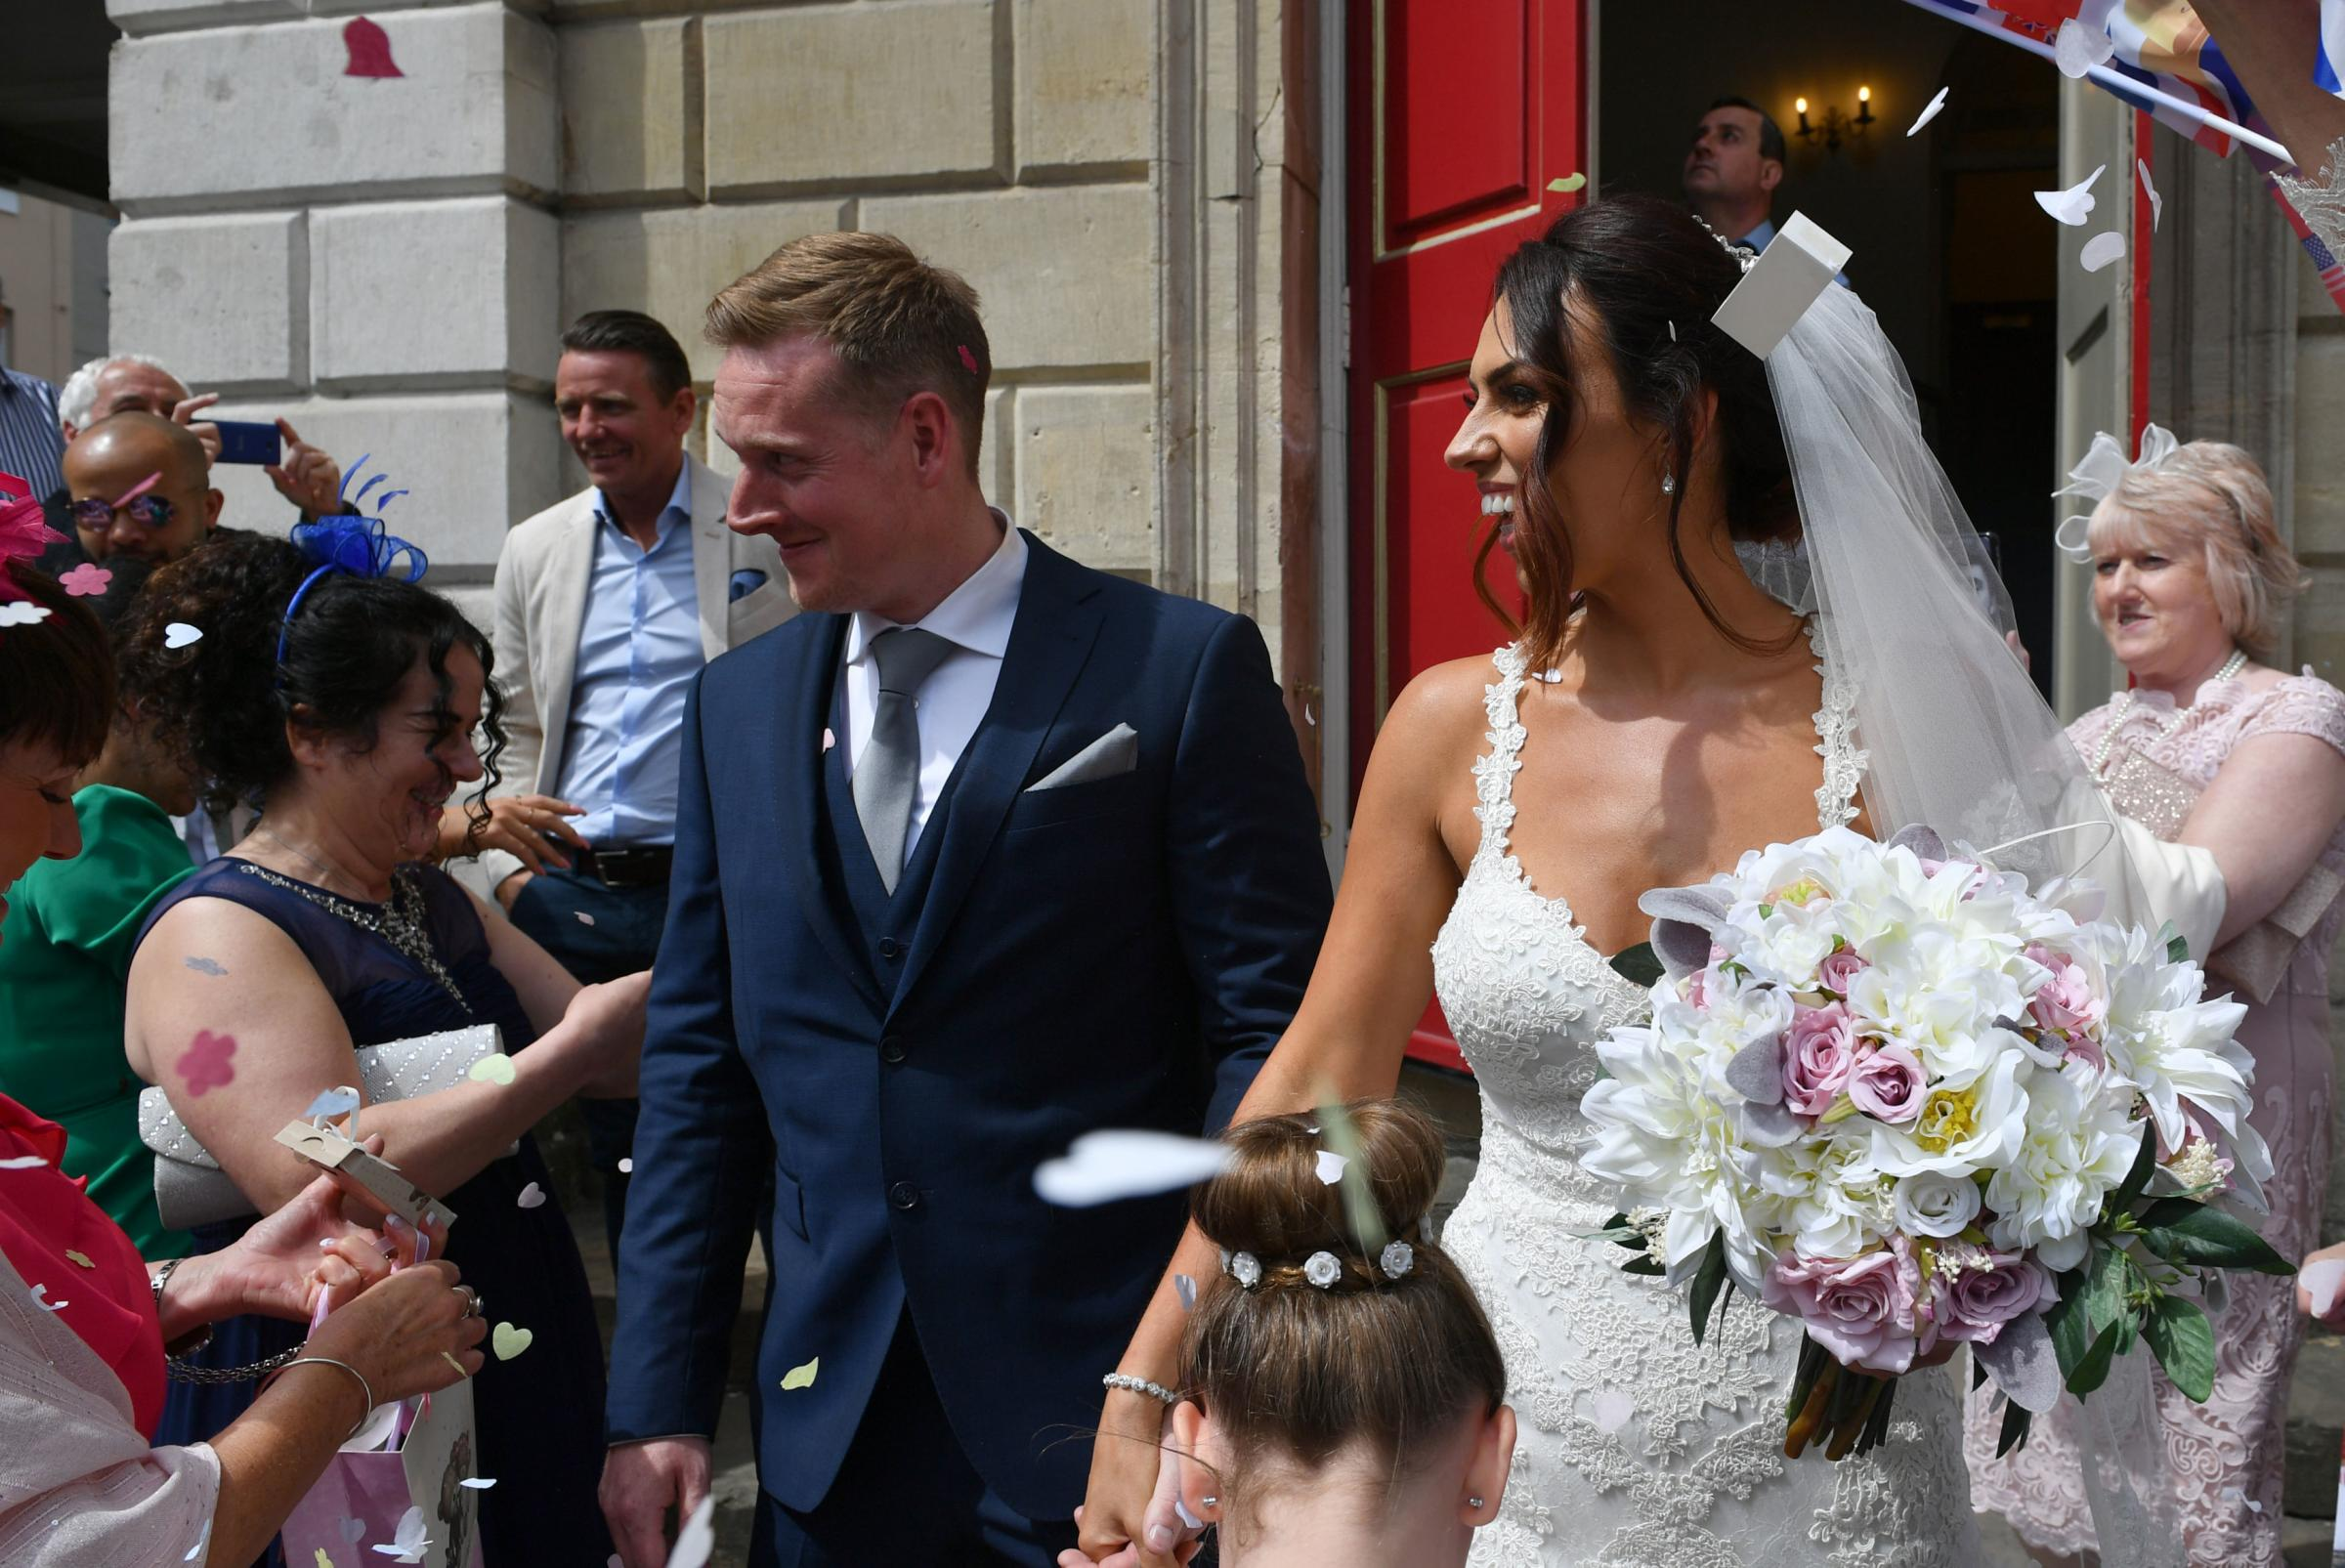 The Windsor wedding before Harry and Meghan's! Happy couple greeted by crowds